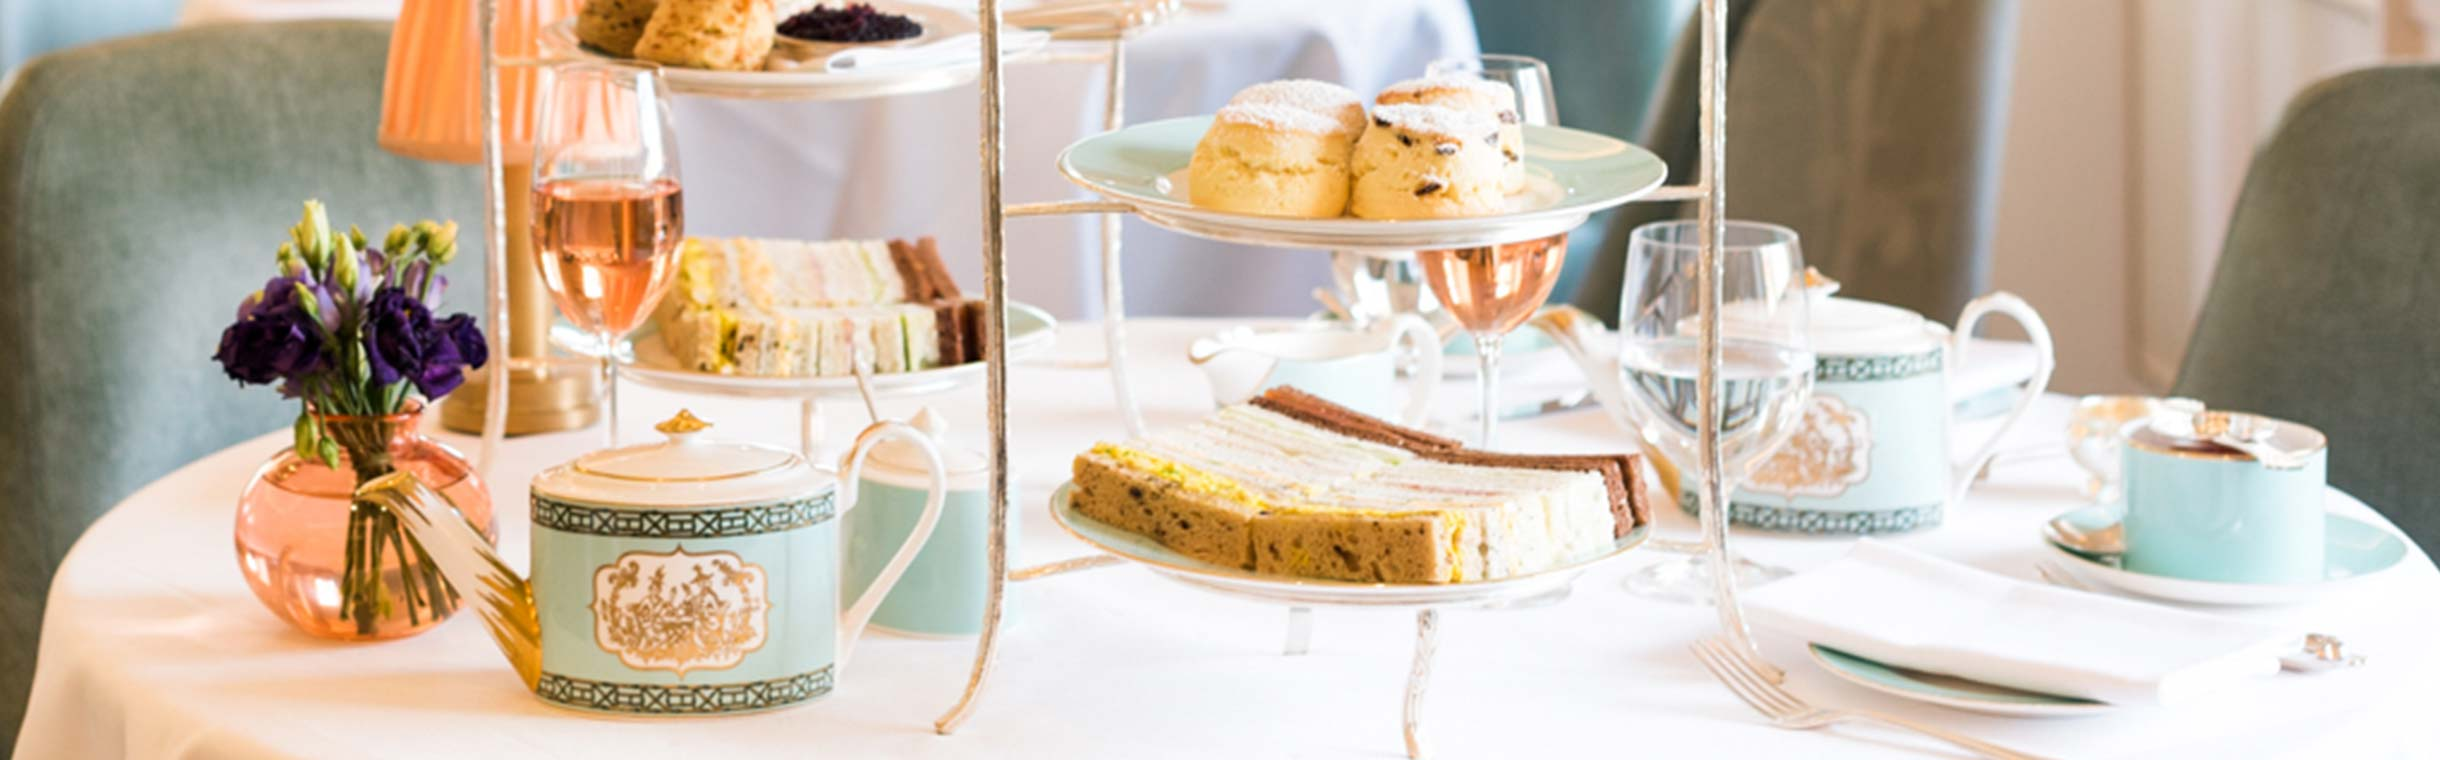 fortnum and mason afternoon tea londres